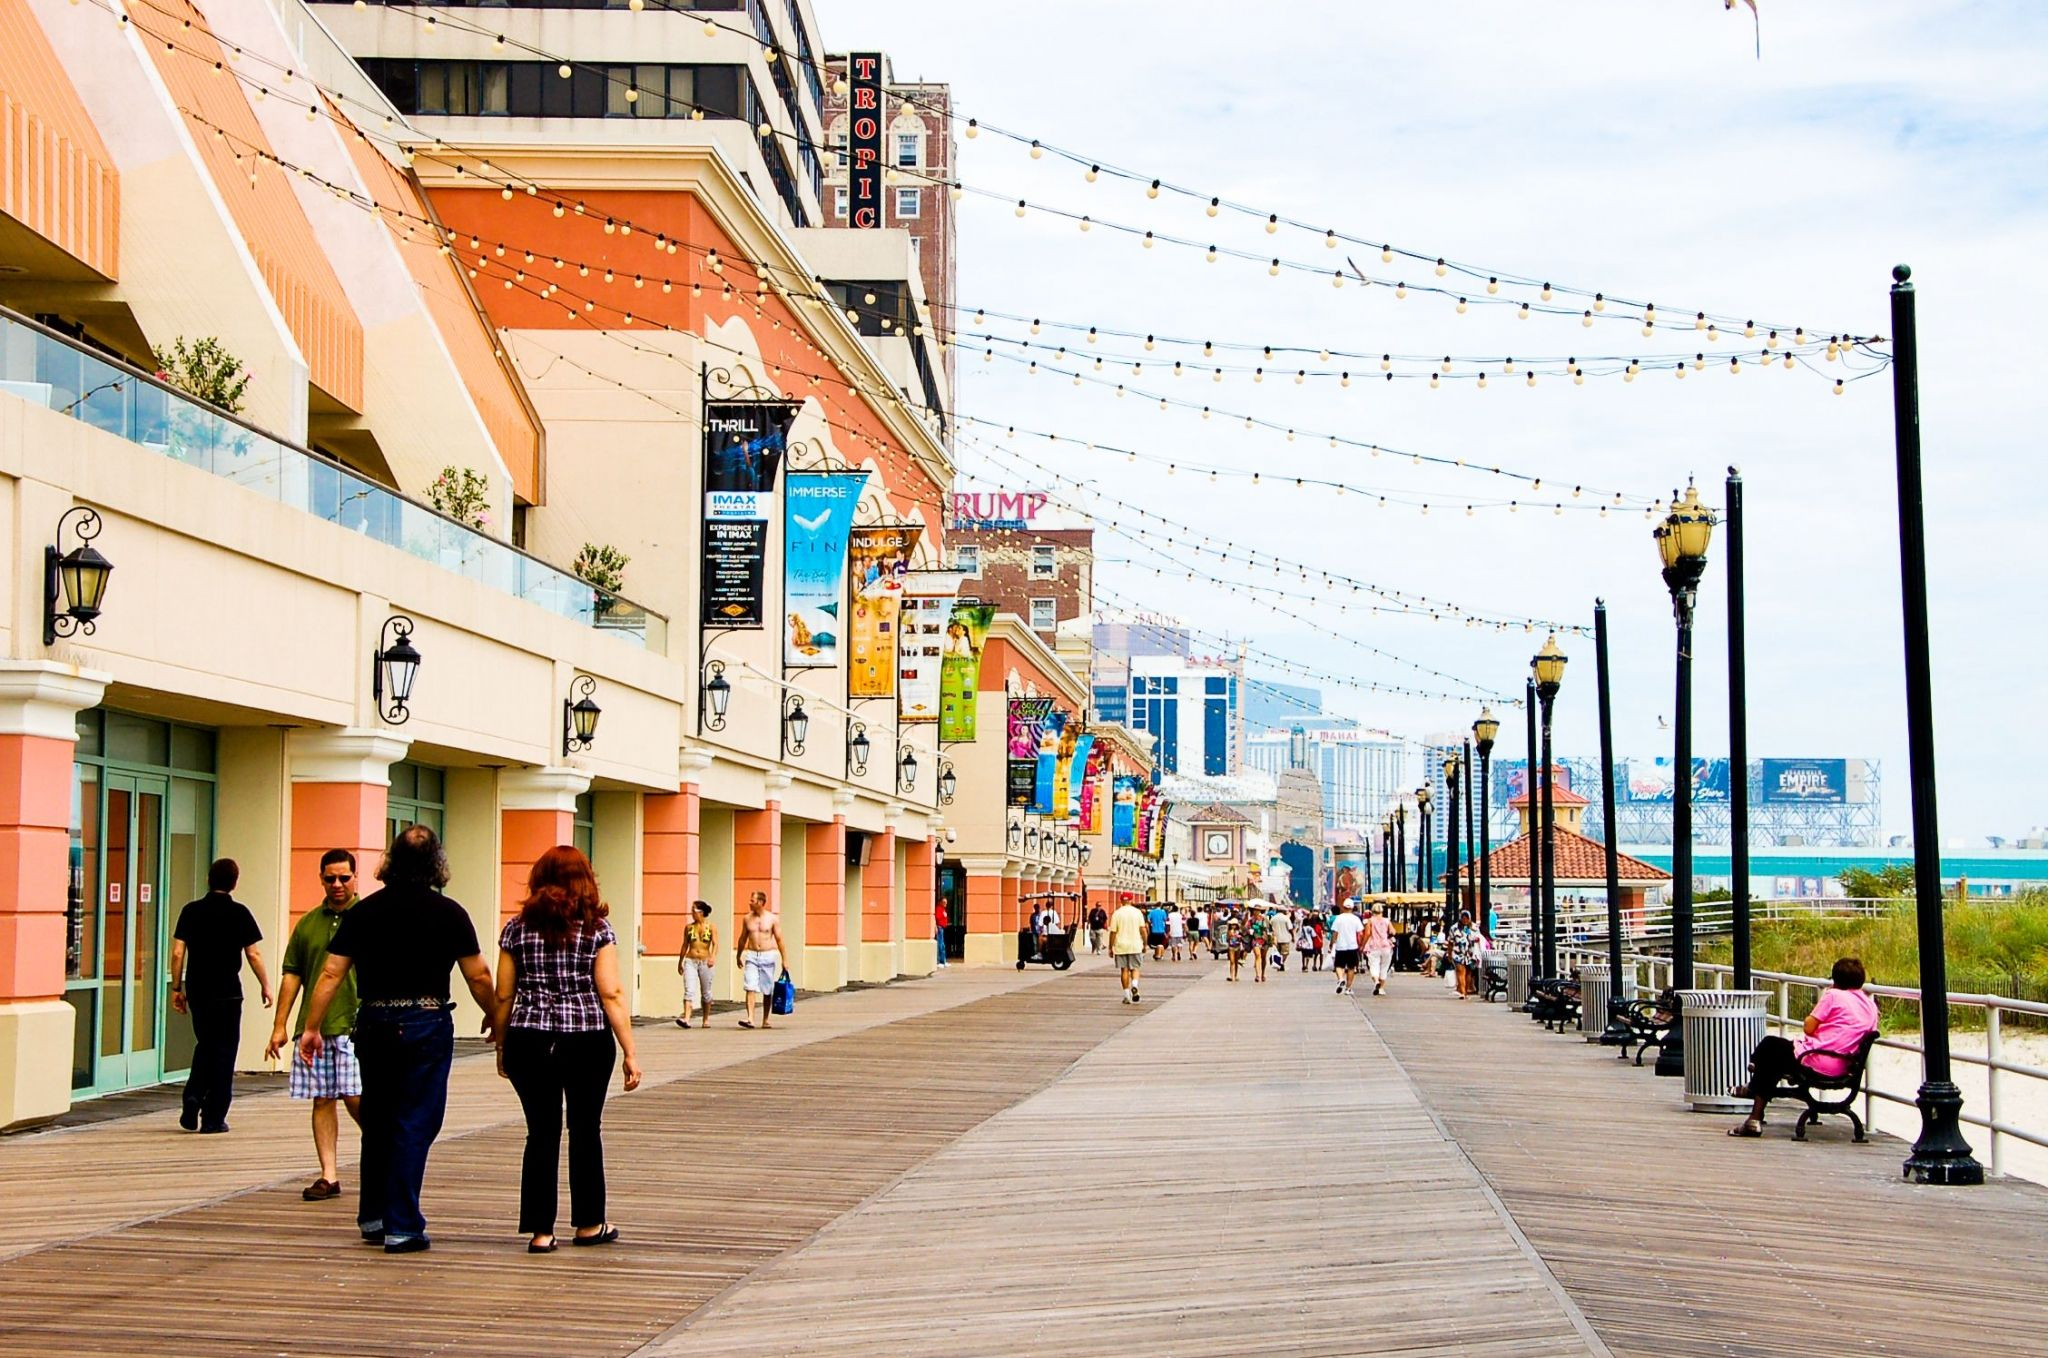 Sheraton Atlantic City - Atlantic City Boardwalk